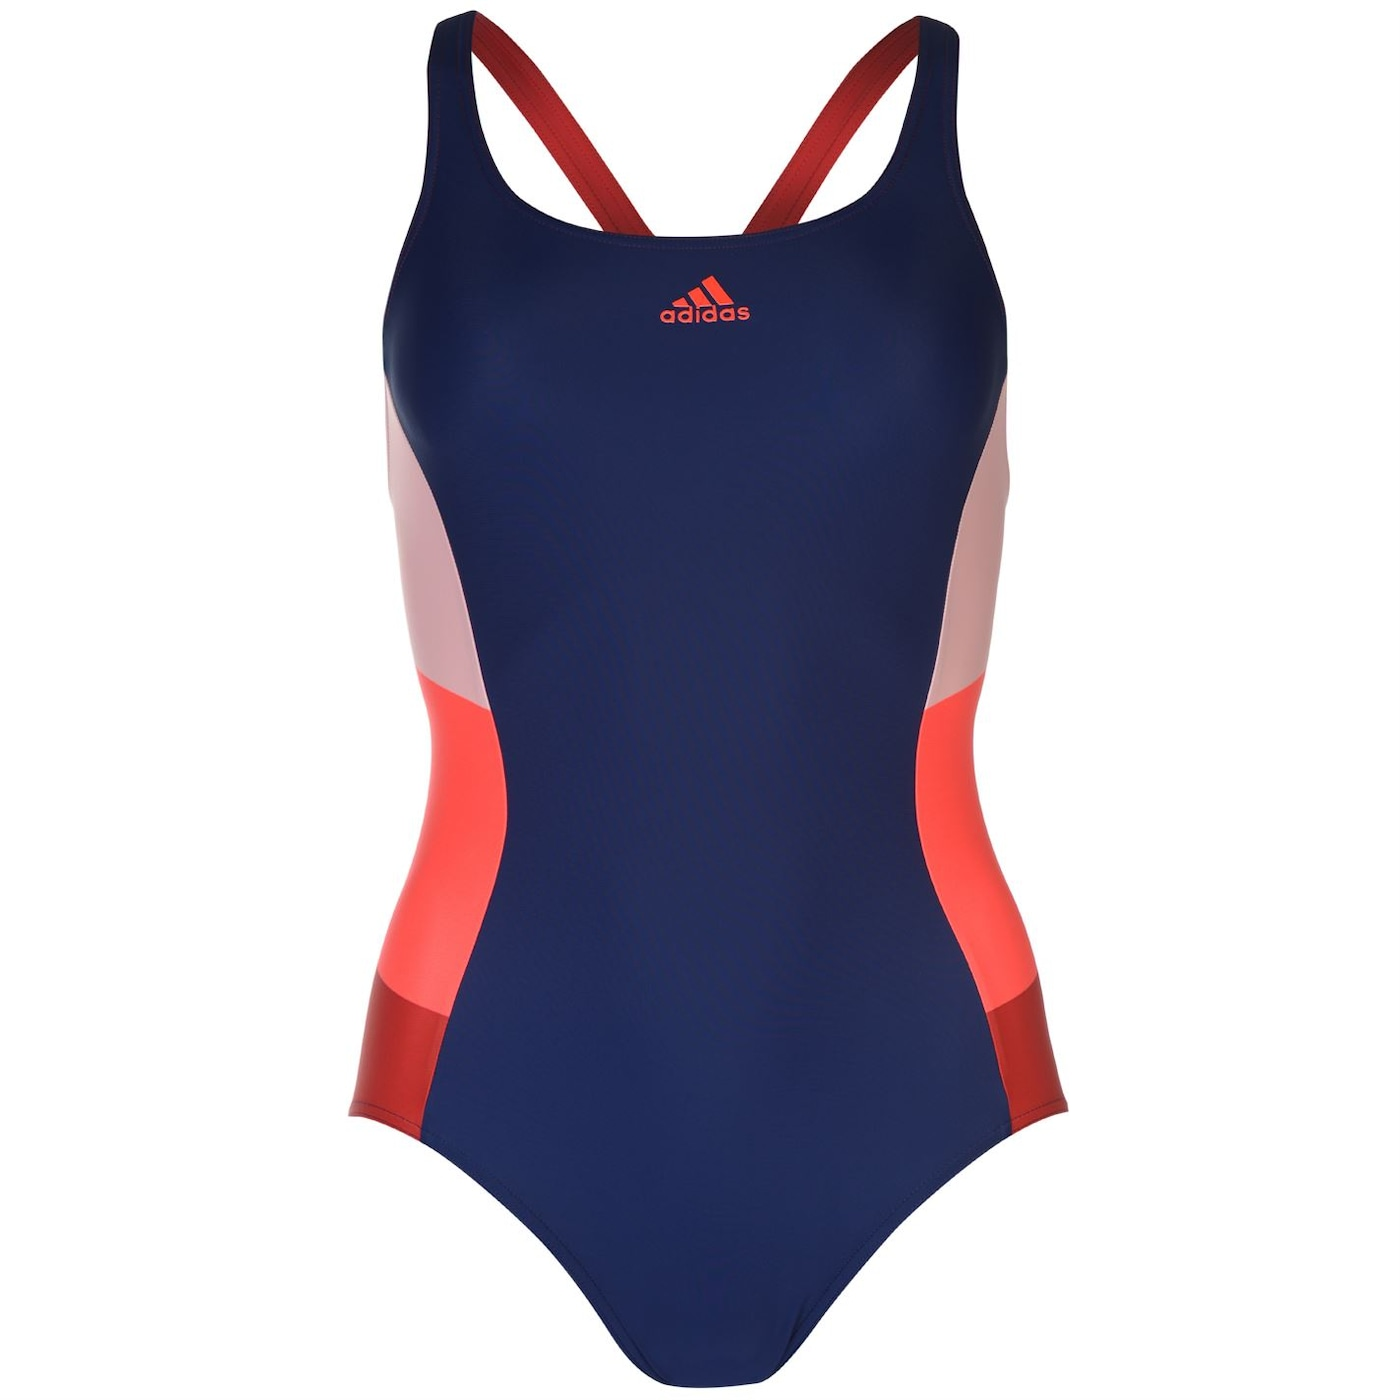 Adidas Infinitex Fitness Eco Swimsuit Ladies